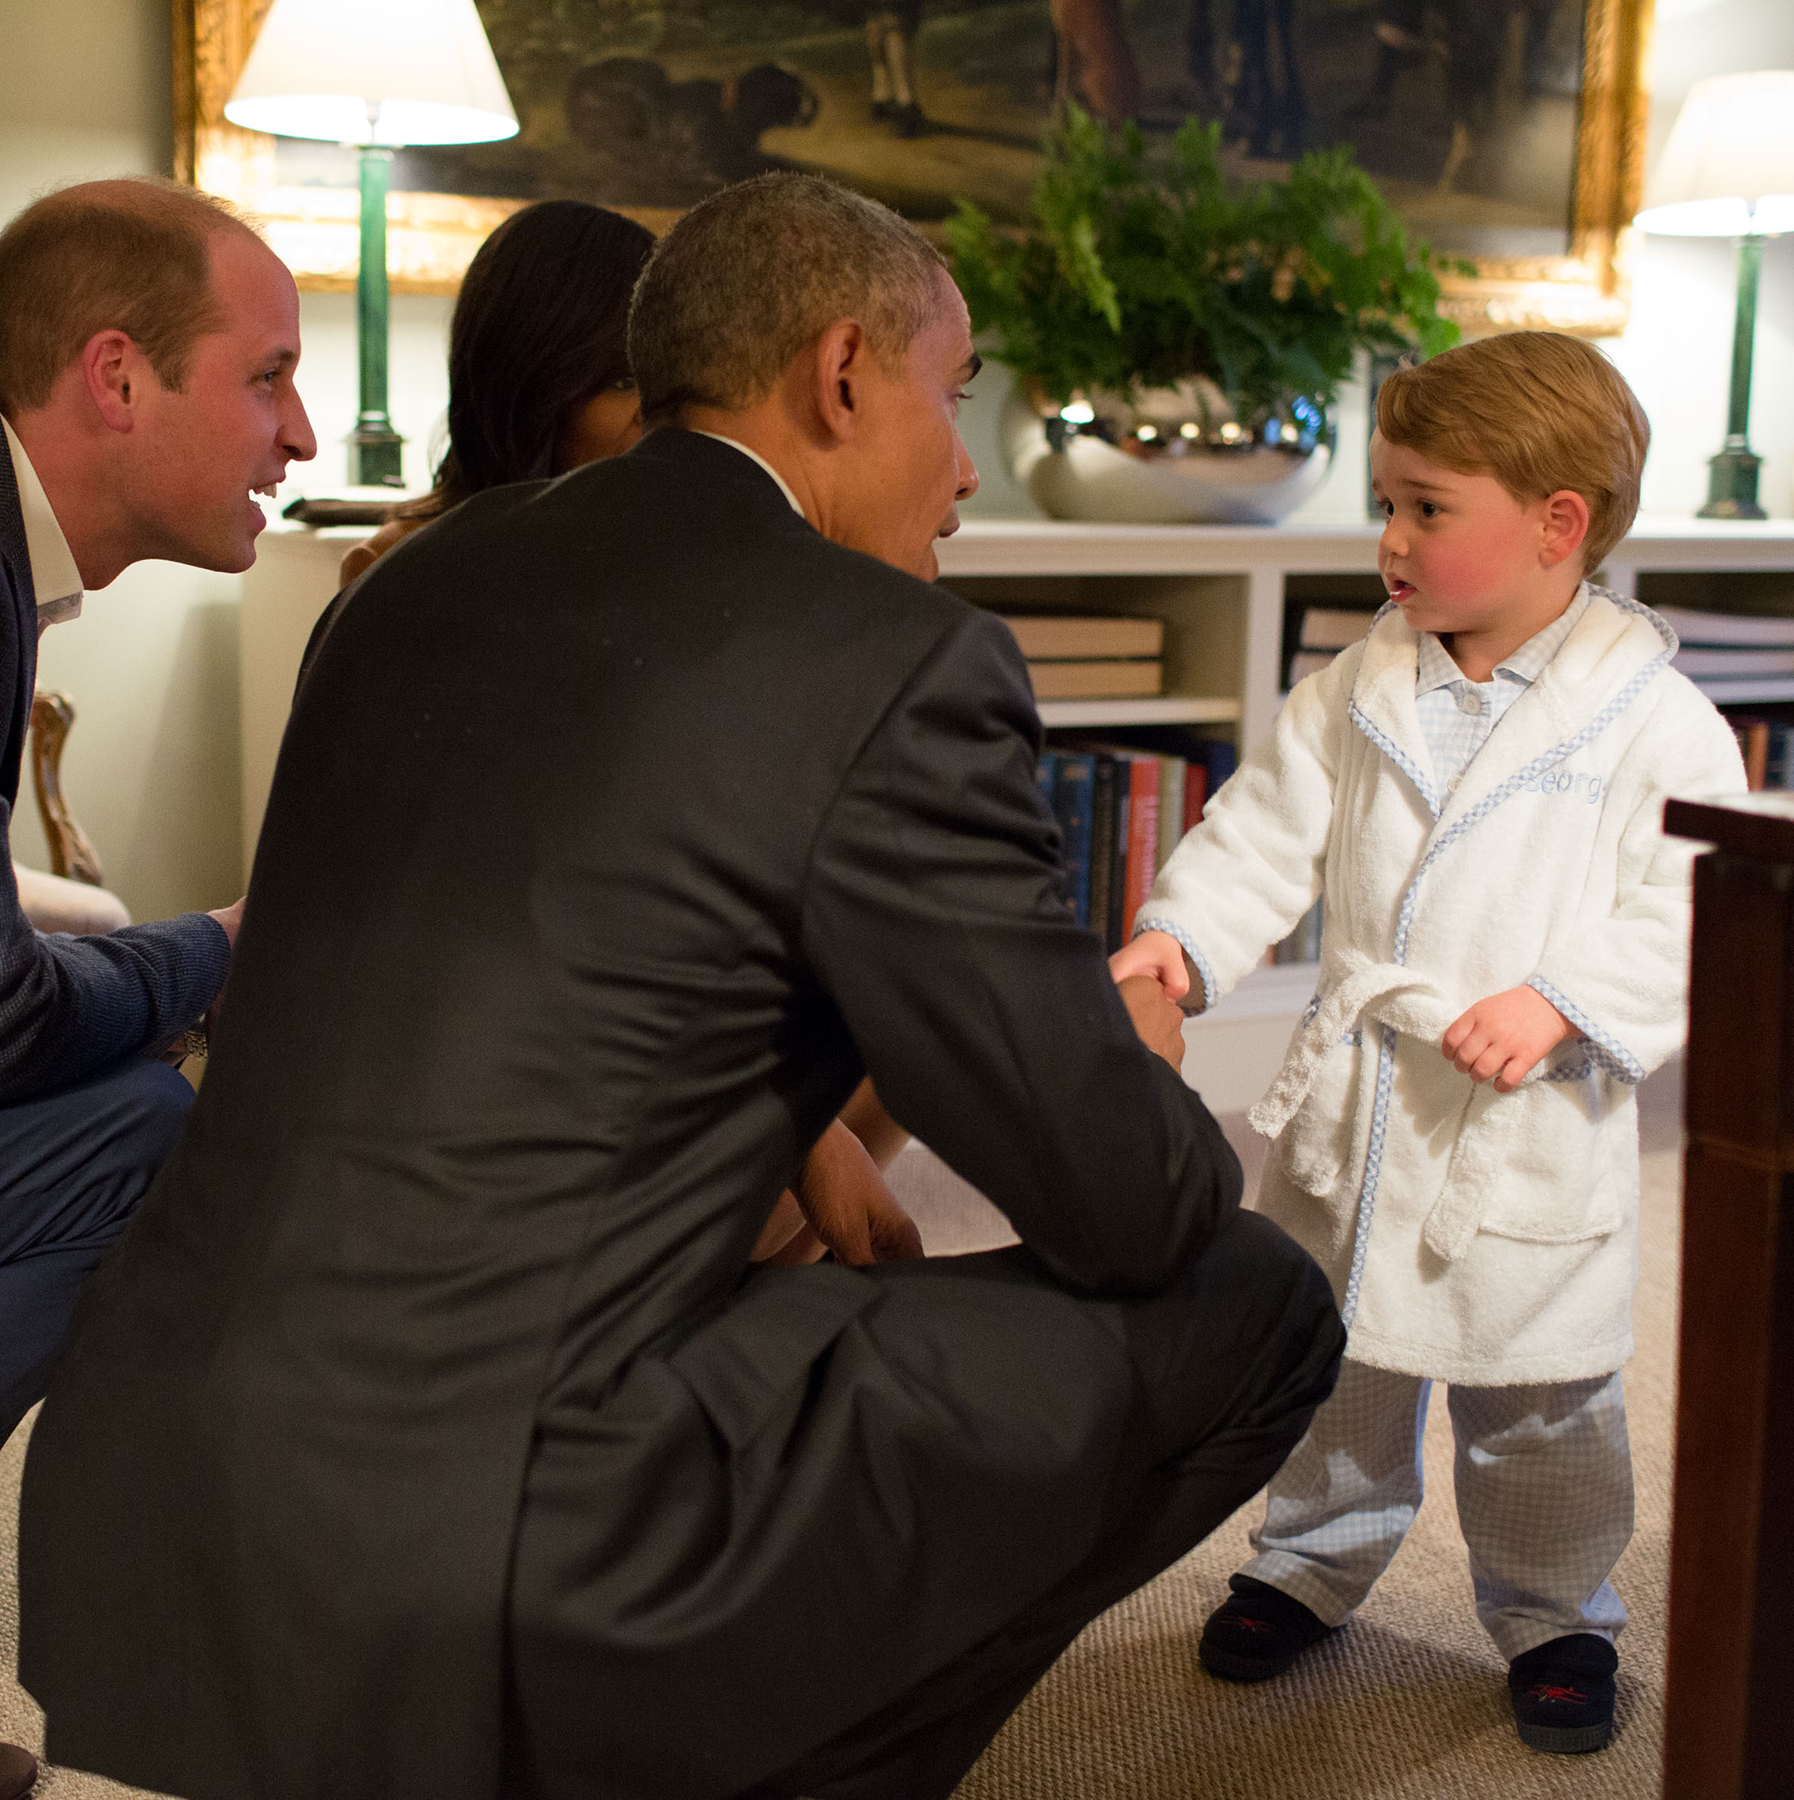 Meeting President Obama in His Robe